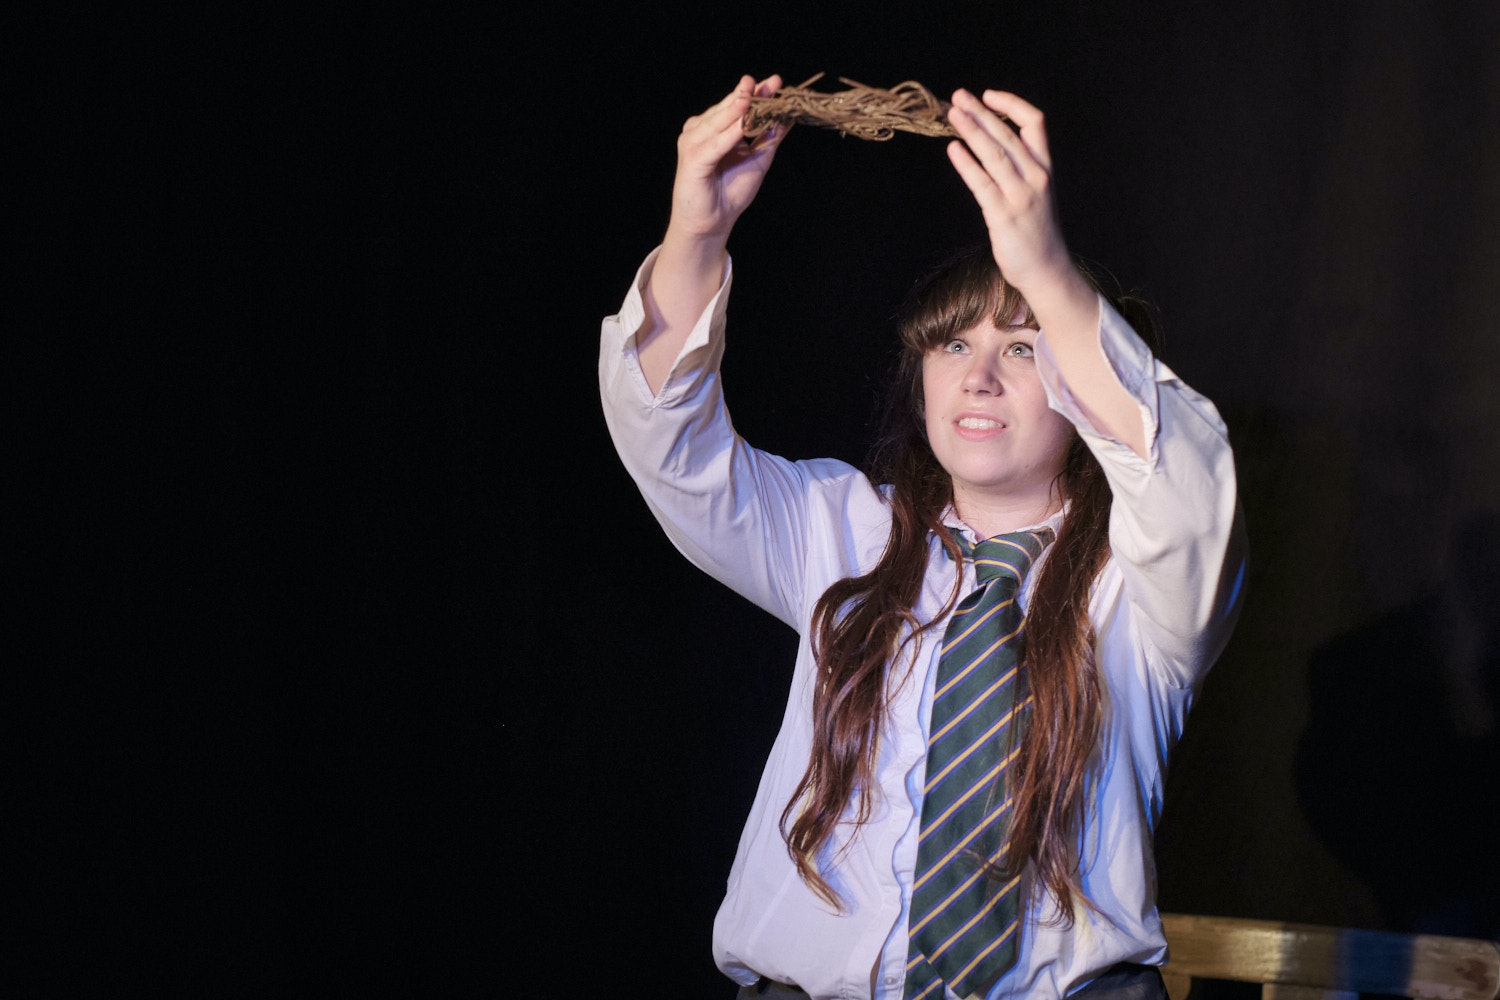 A girl in school uniform raises a crown of thorns. Image from 'The True Story Of The Little Girl Who Thought She Was The Second Coming Of Jesus Christ'